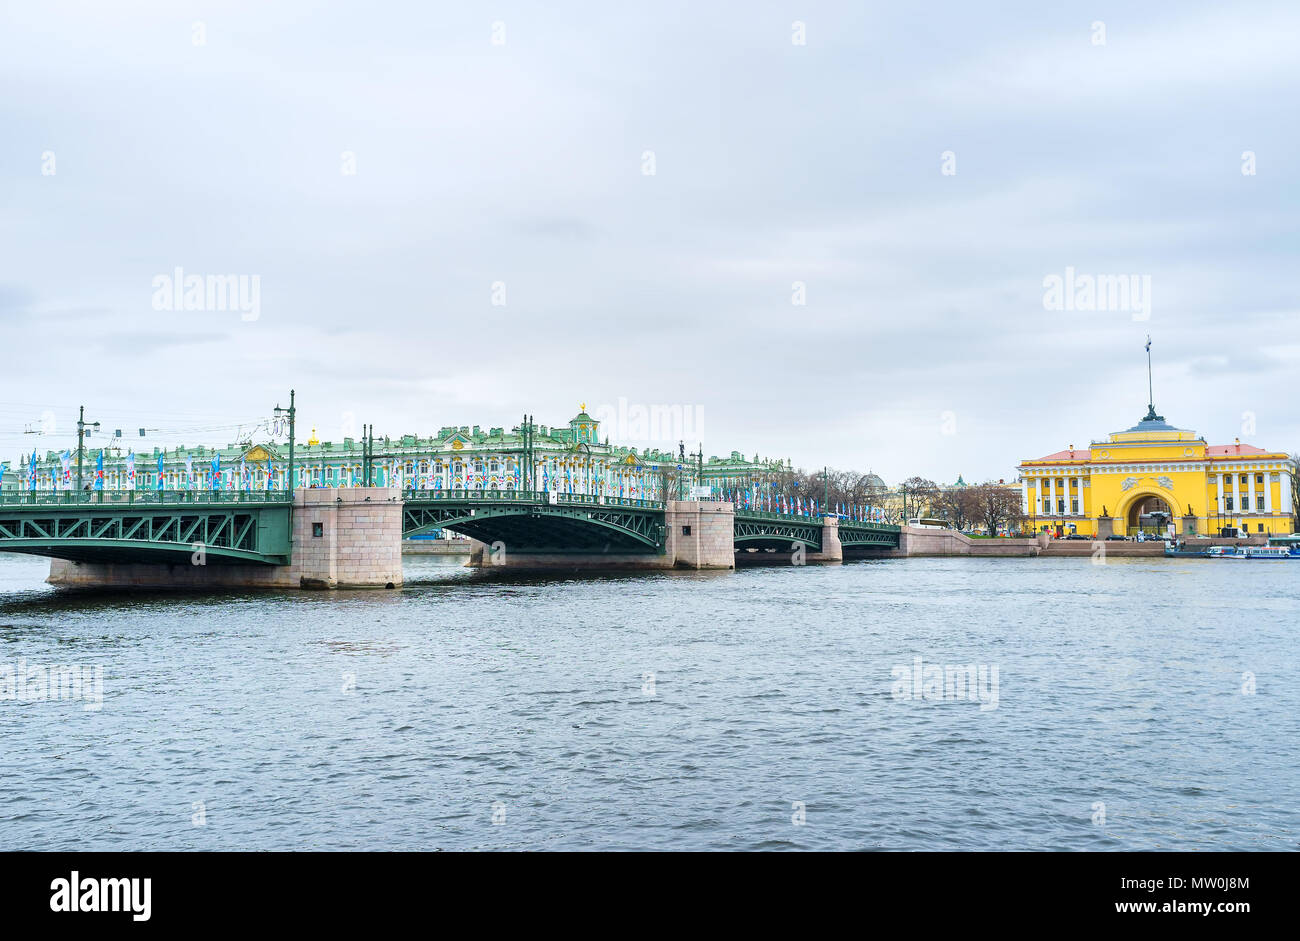 SAINT PETERSBURG, RUSSIA - APRIL 26, 2015: The view on Palace Bridge and Admiralty Building and Winter Palace on the background, on April 26 in S. Pet Stock Photo